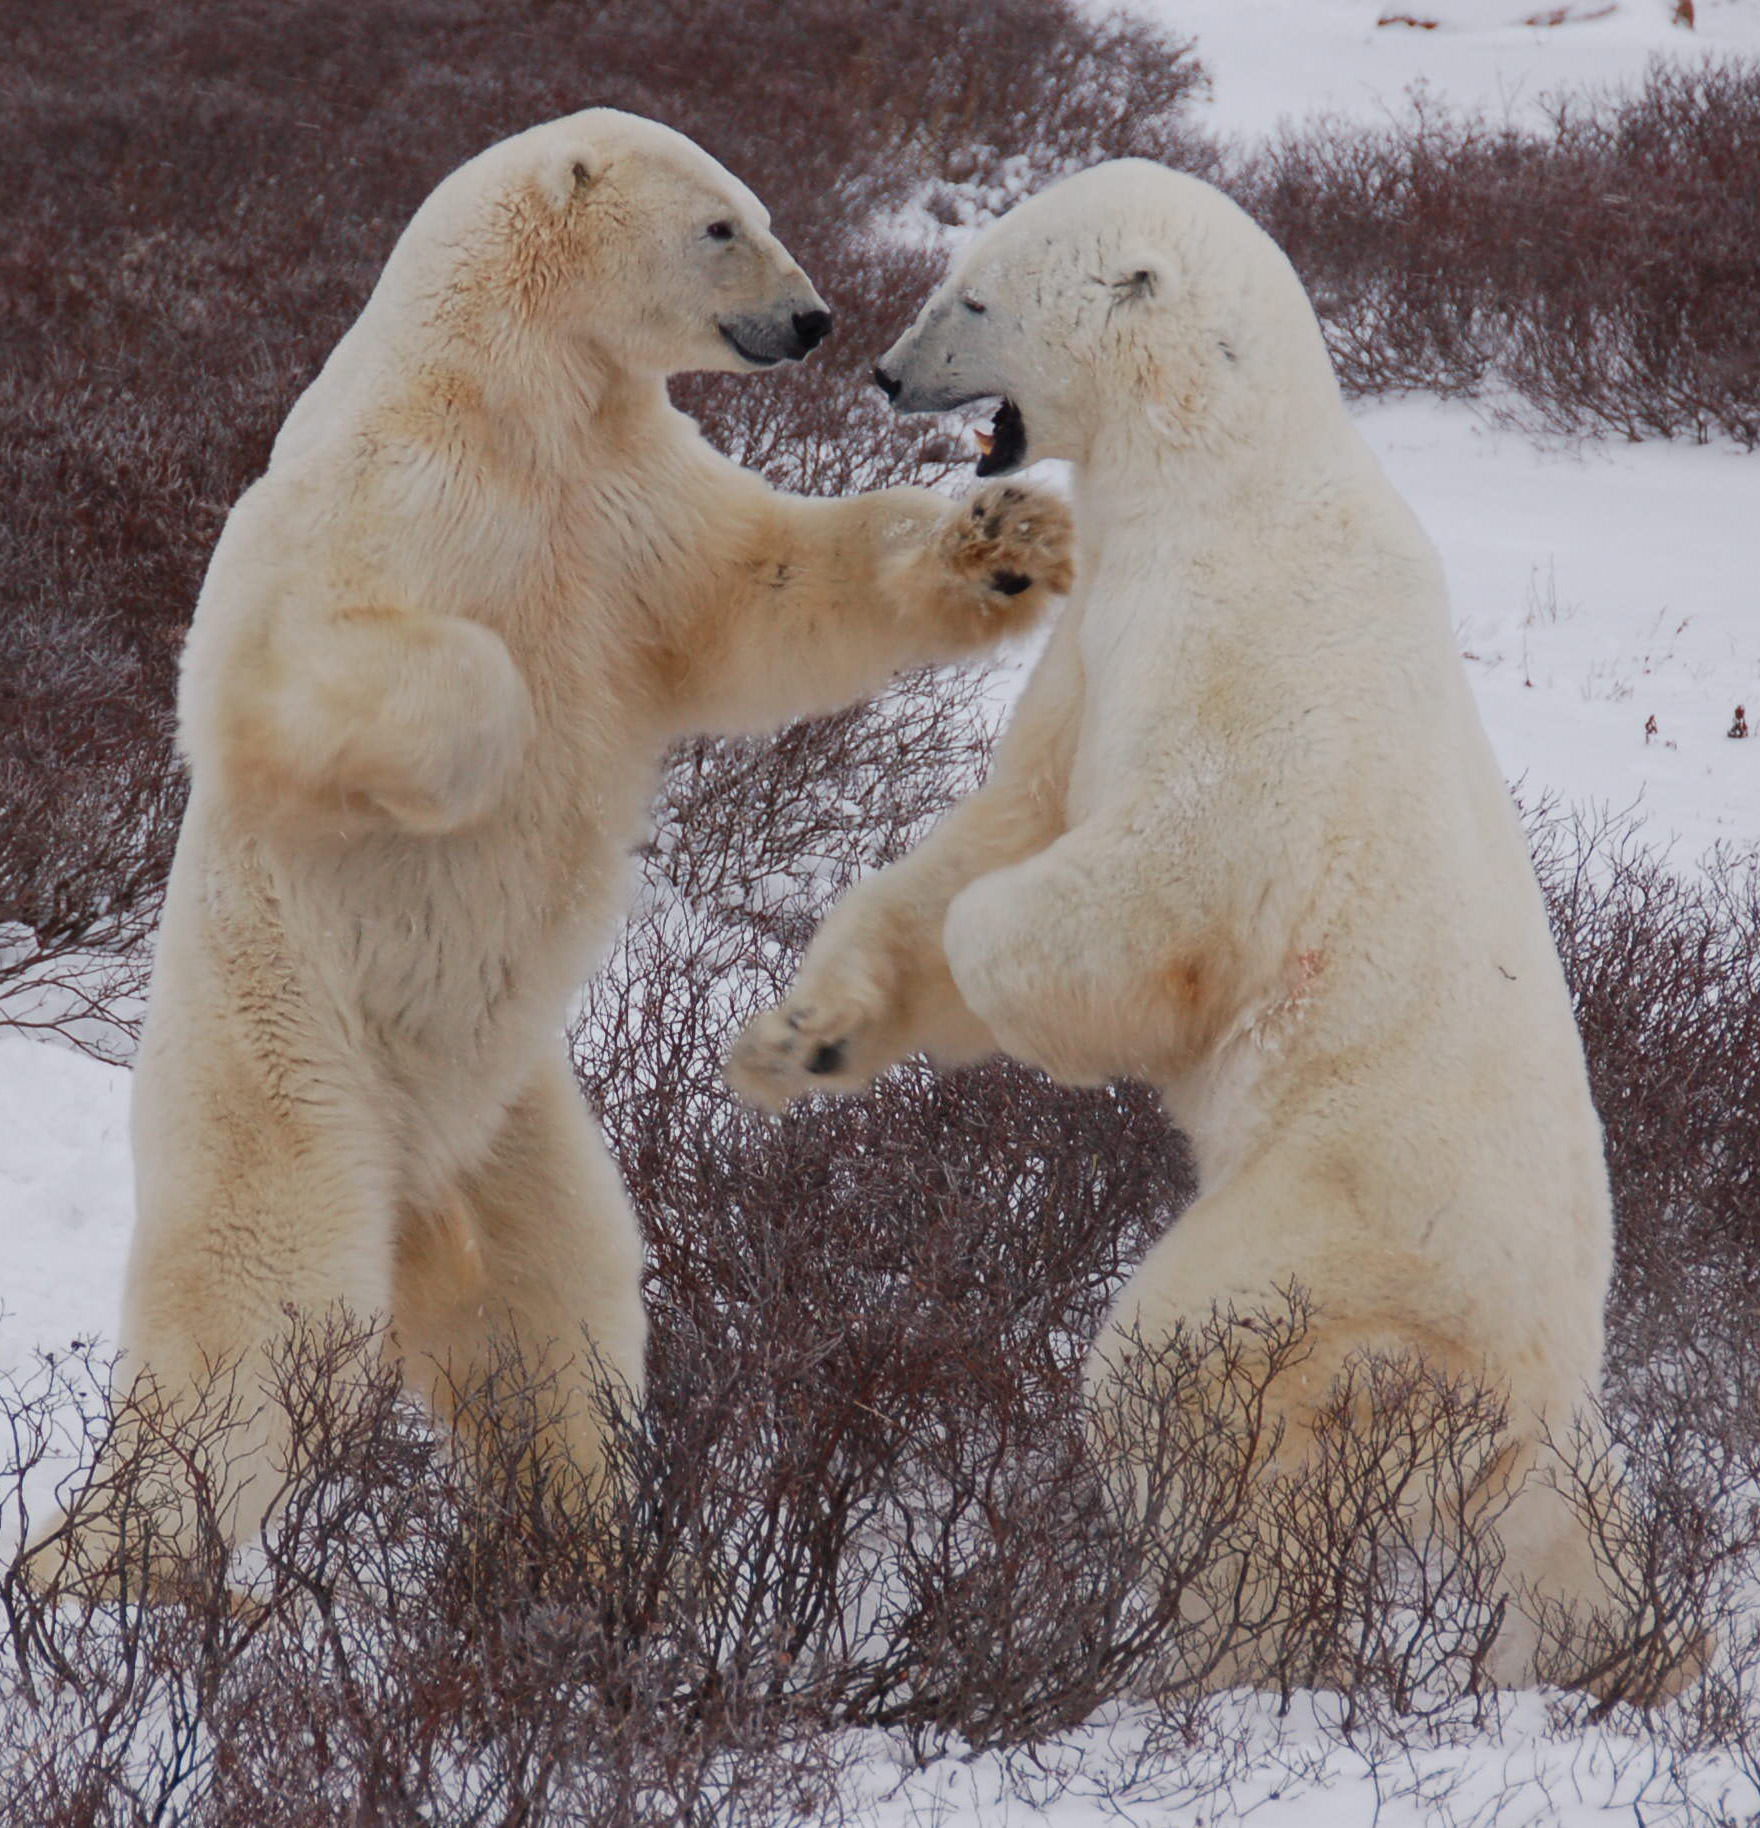 Two male polar bears playfully spar near Hudson Bay, where sea ice melts in the summer and then reforms in the autumn. The bears need the ice in late summer and fall to be able to reach their prey, primarily seals. (Credit: Steven C. Amstrup, Polar Bears International)